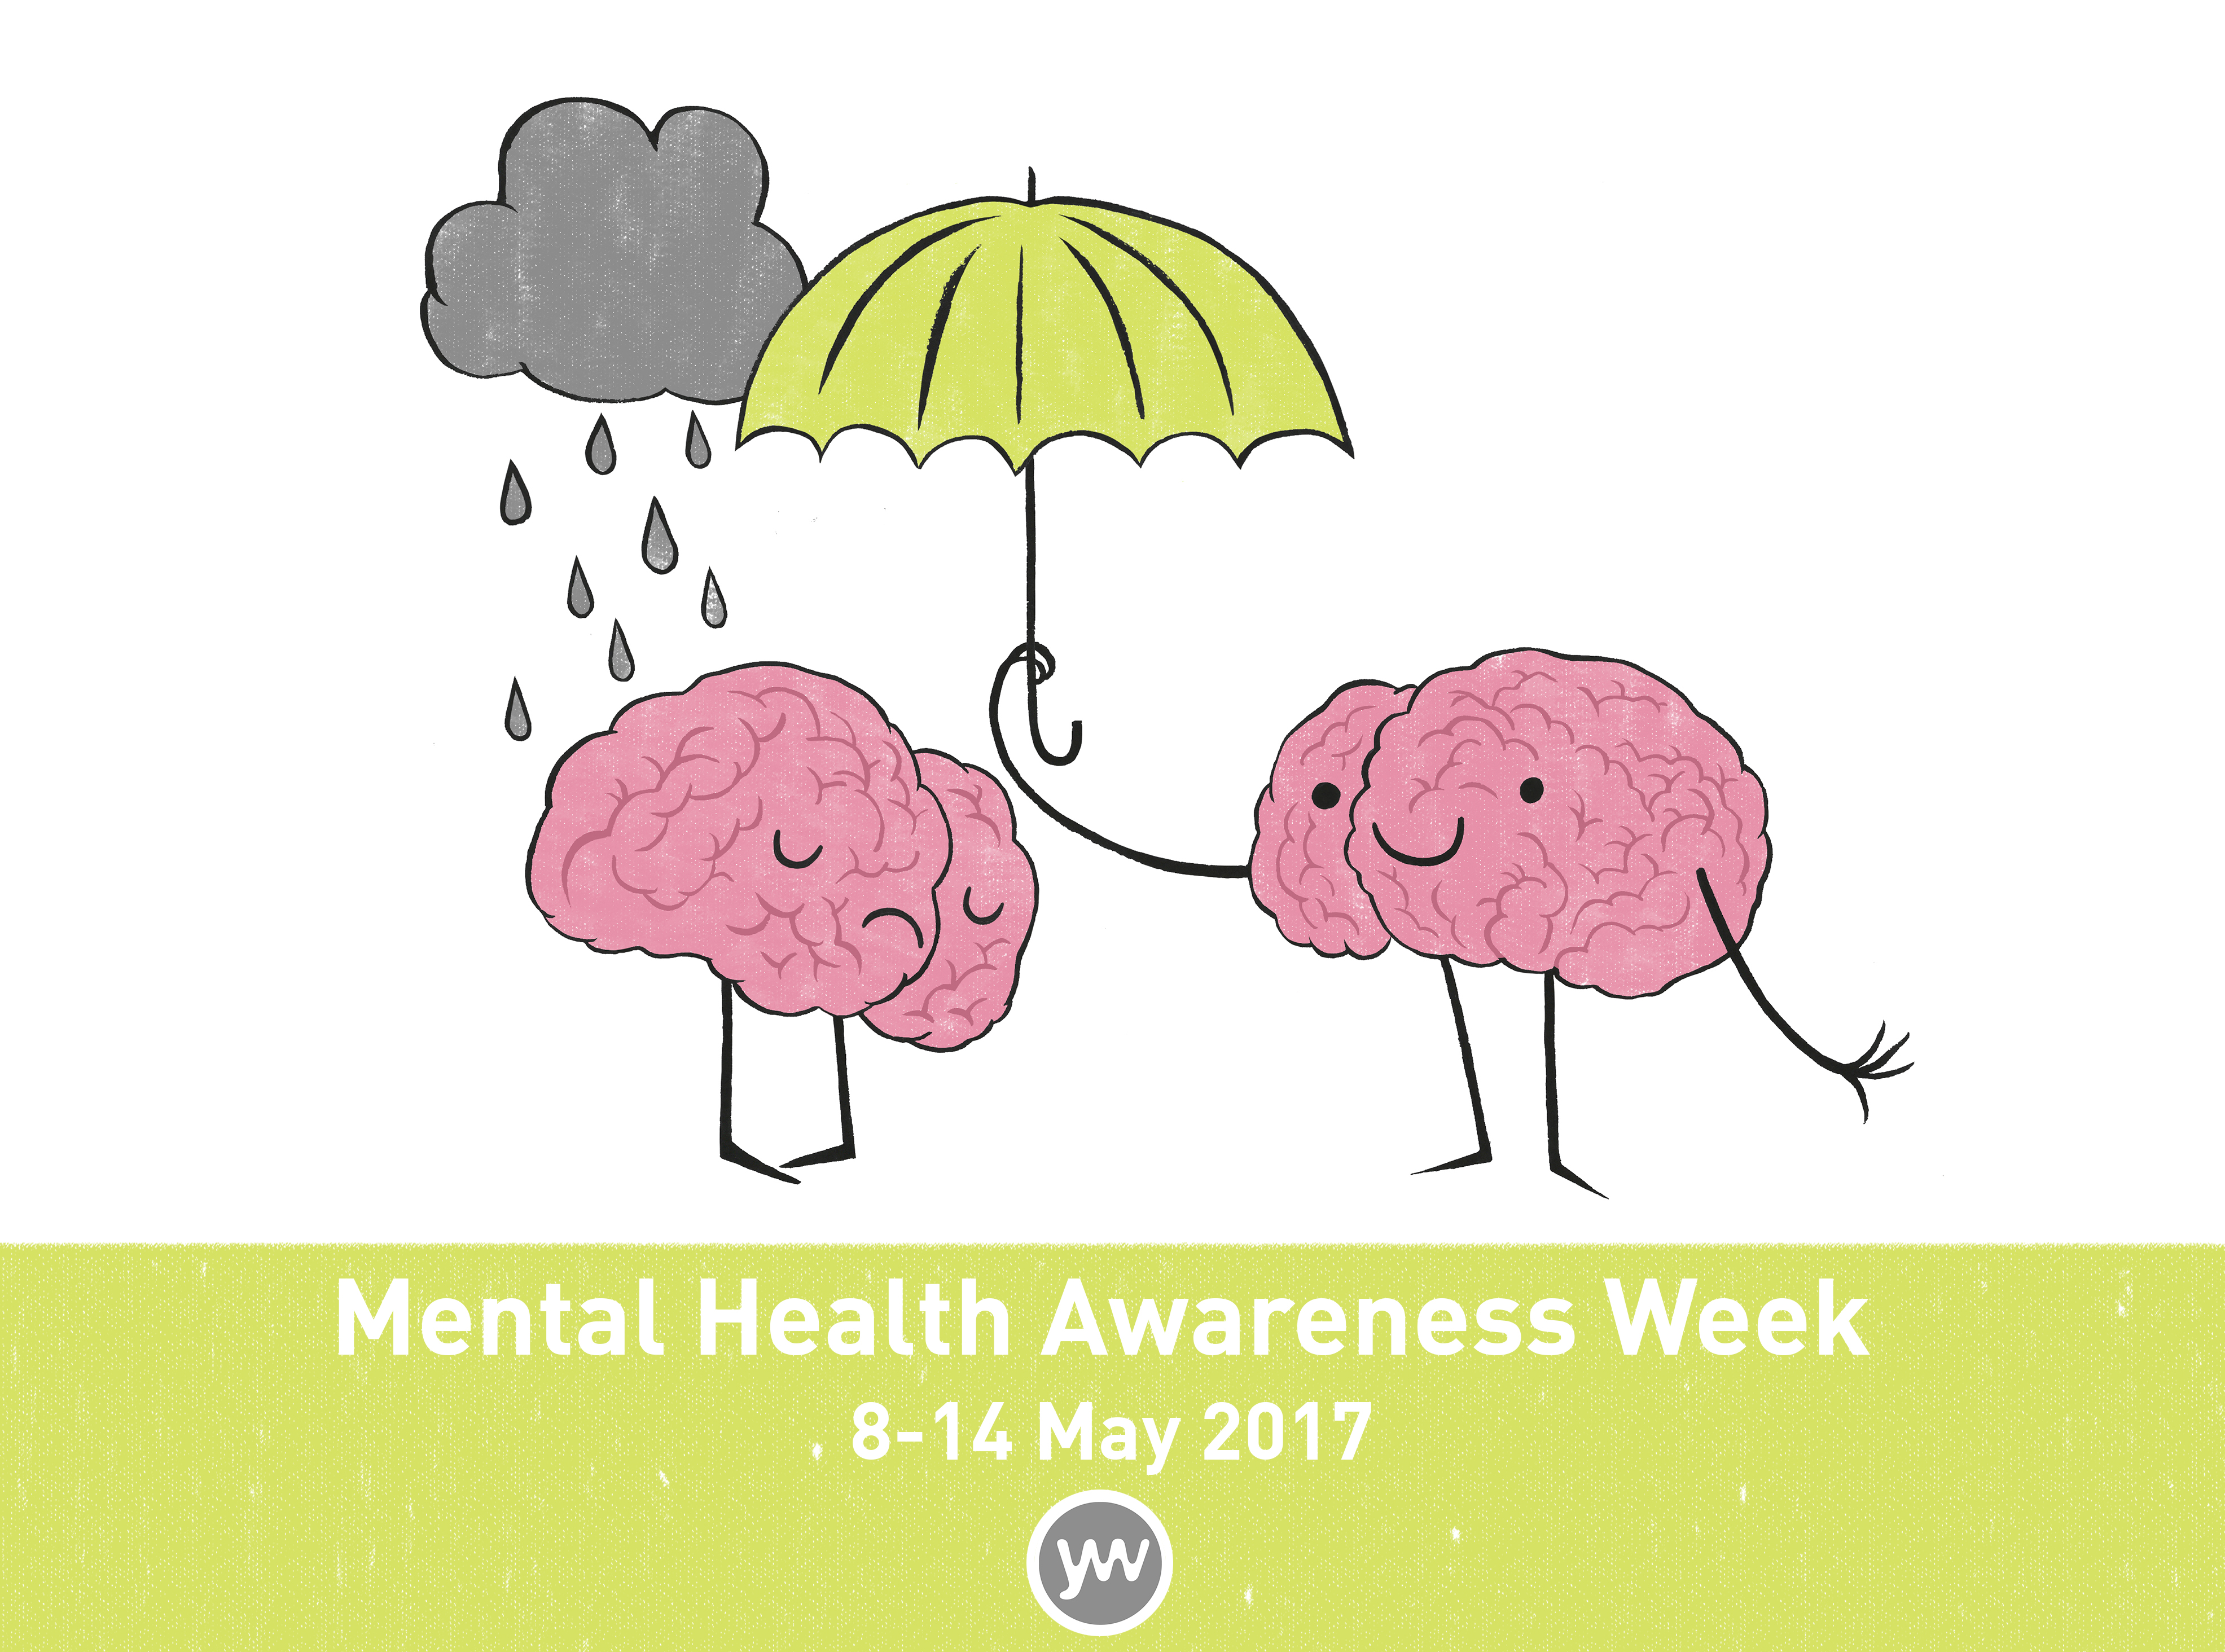 Mental Health Awareness Week - Do You Know How to Seek Help?